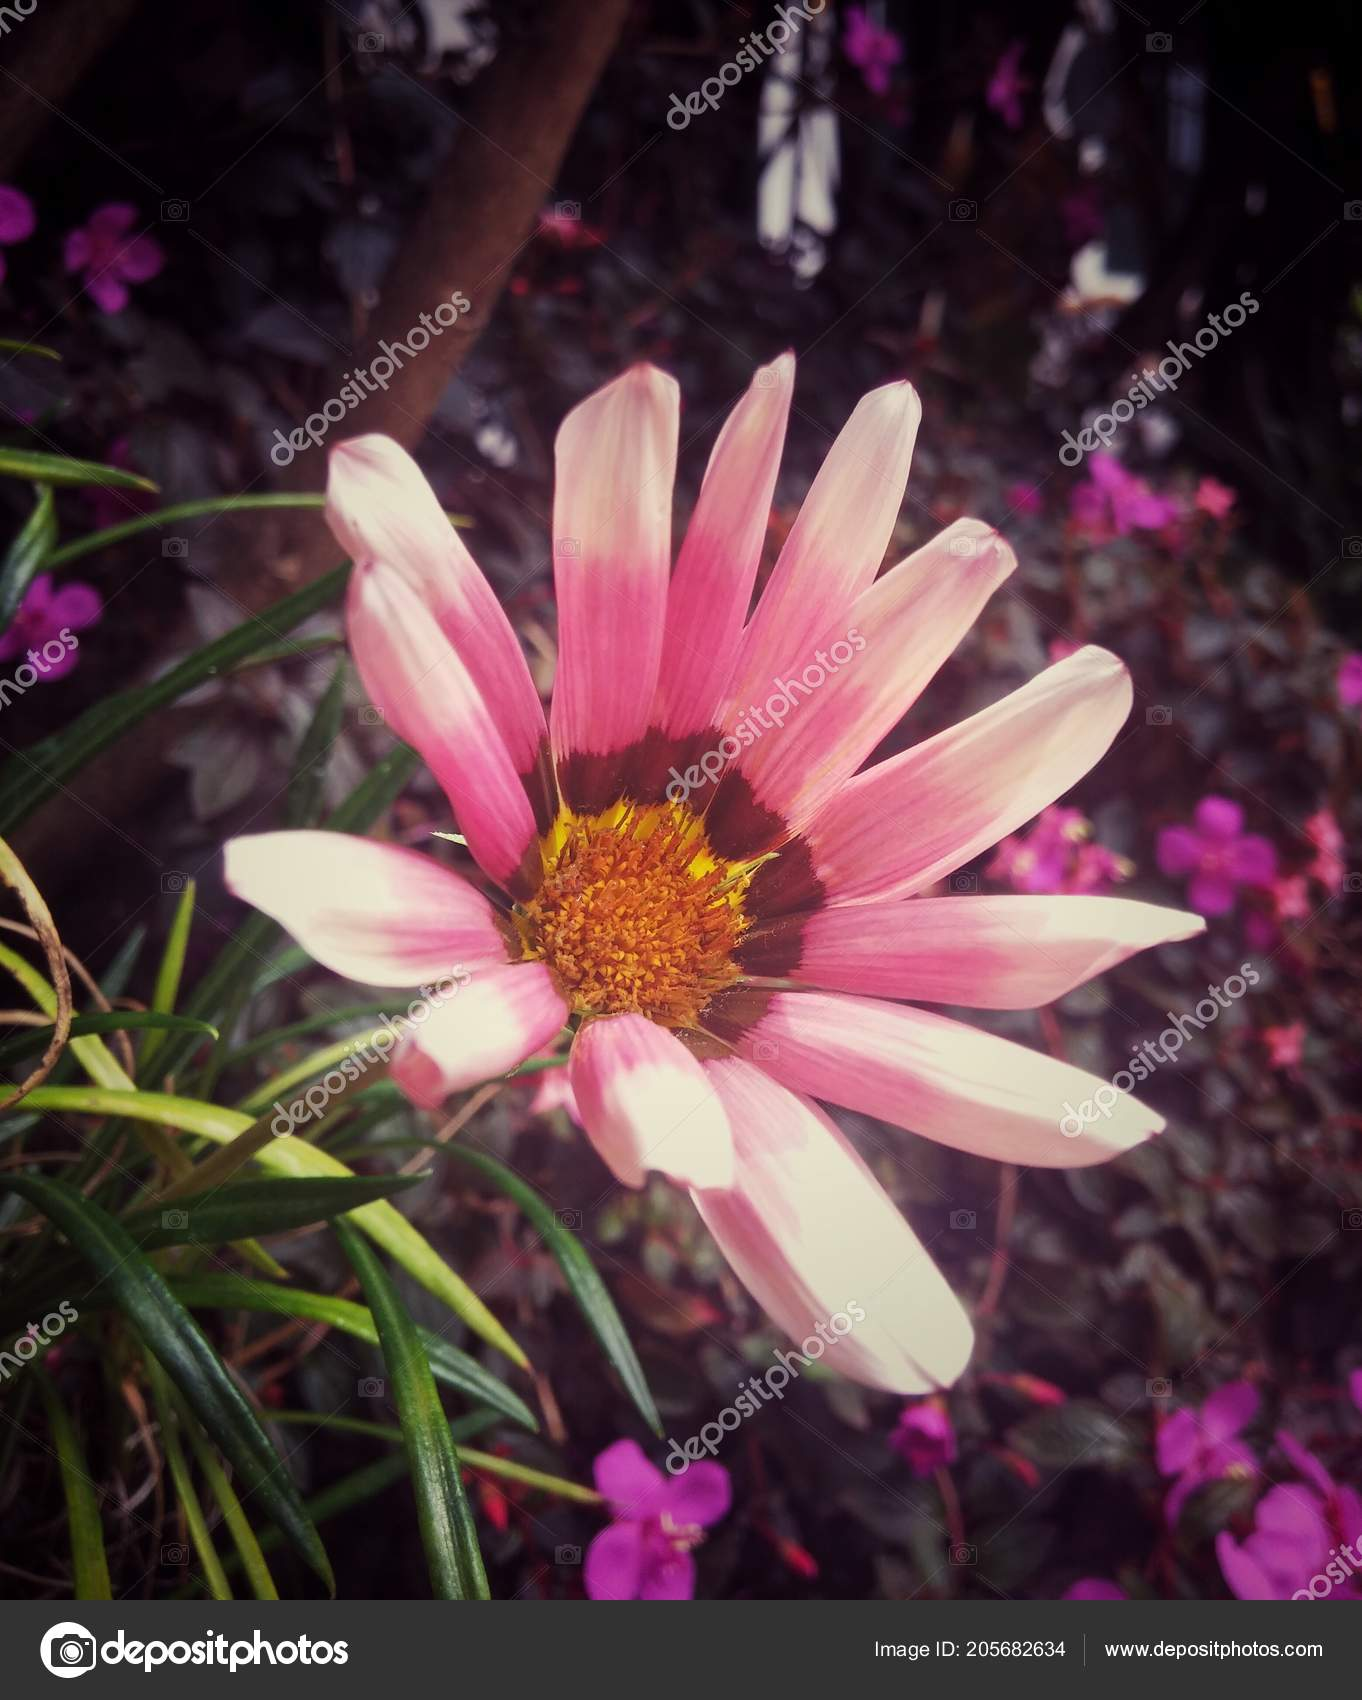 Pink Cute Daisy Flower Yellow Center Purple Background Living Indoors Stock Photo C Davidbautista 205682634 A story surrounded by mystery for the past several months. https depositphotos com 205682634 stock photo pink cute daisy flower yellow html